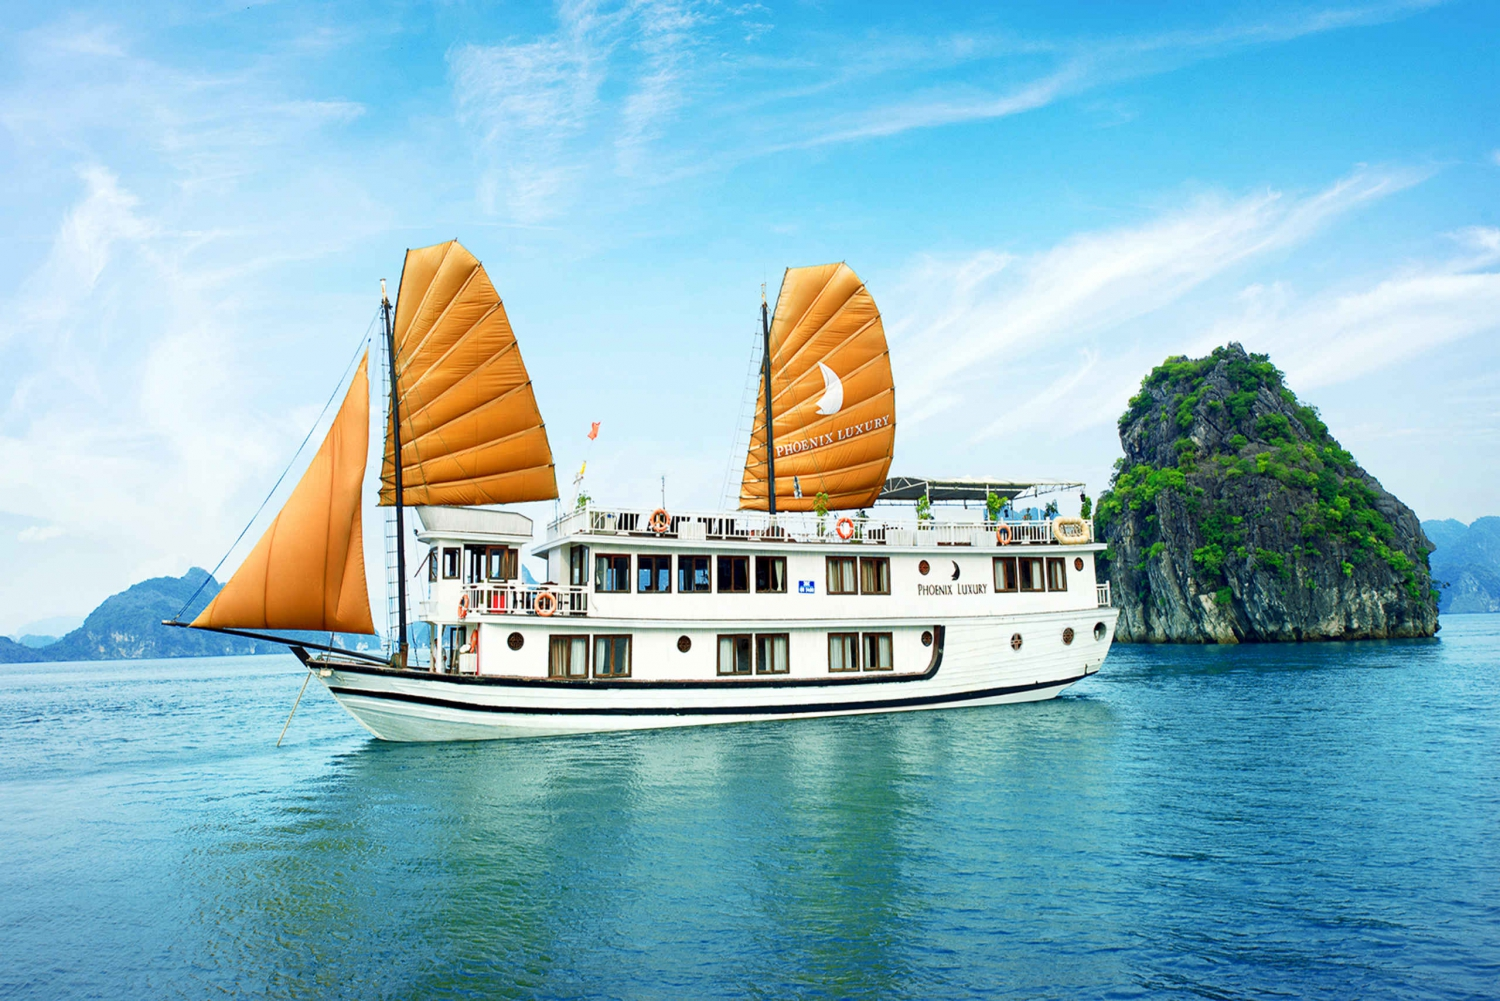 From Hanoi: 2-Day & 1 Night Halong Bay Tour